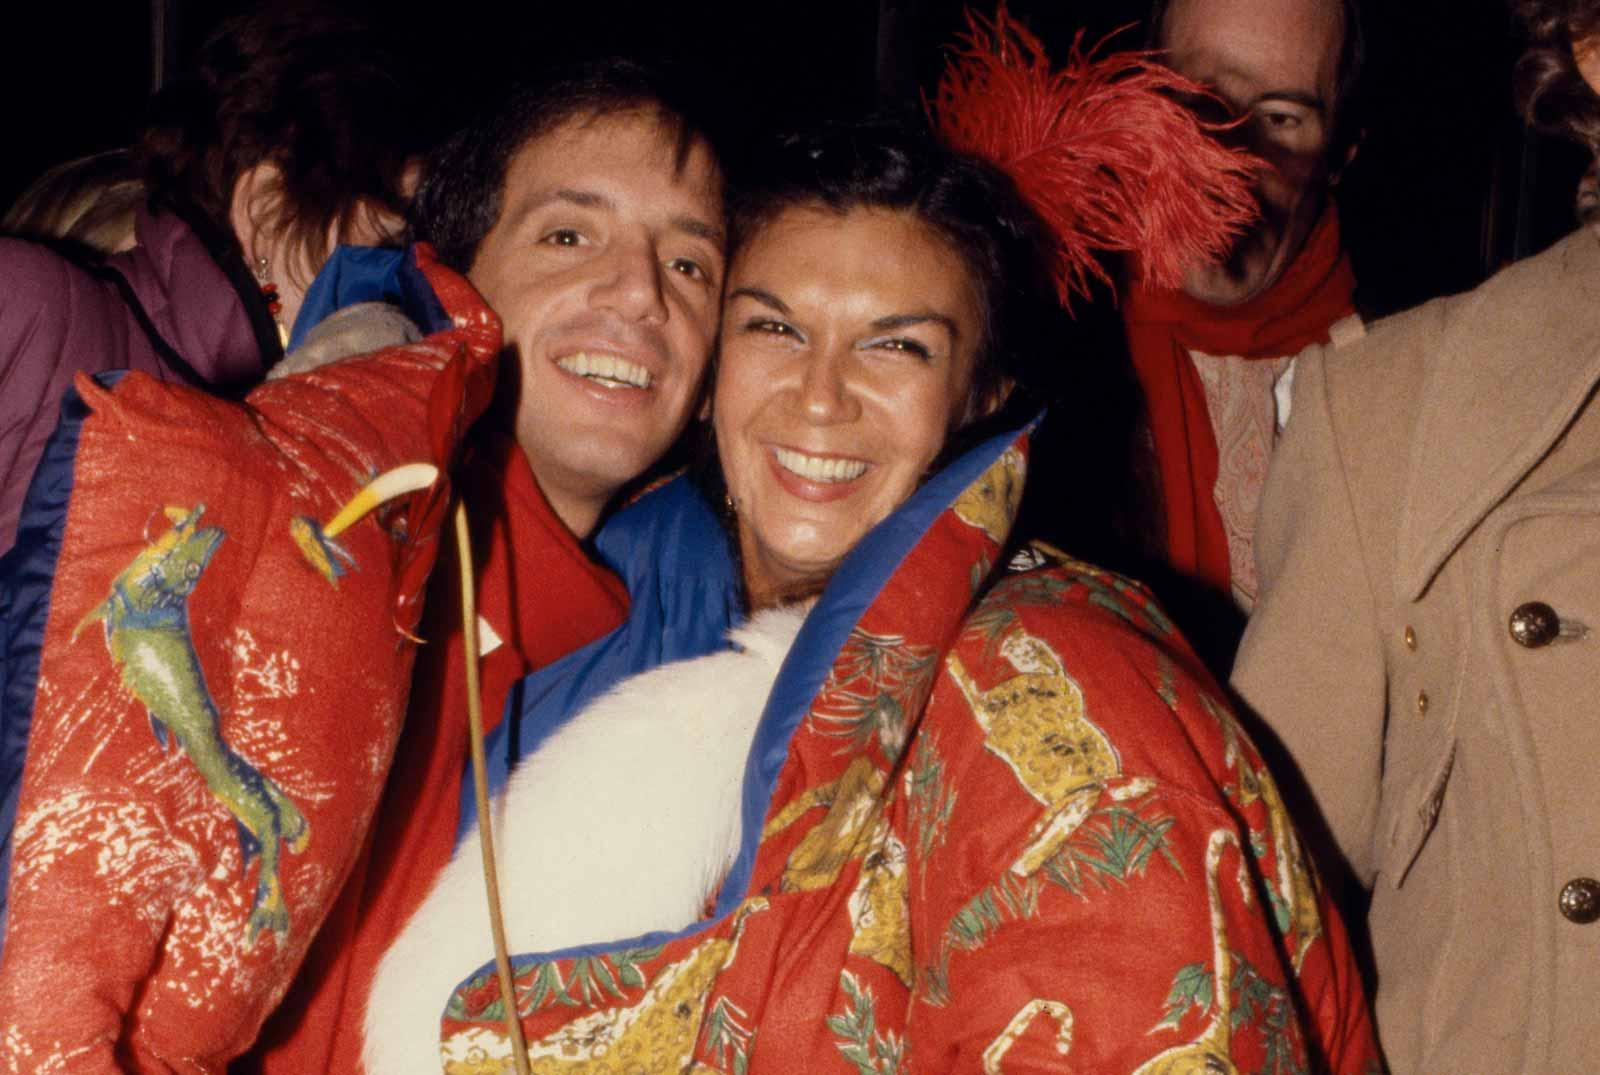 Steve Rubell and Carmen d'Alessio in Norma Kamali coats, 1977.